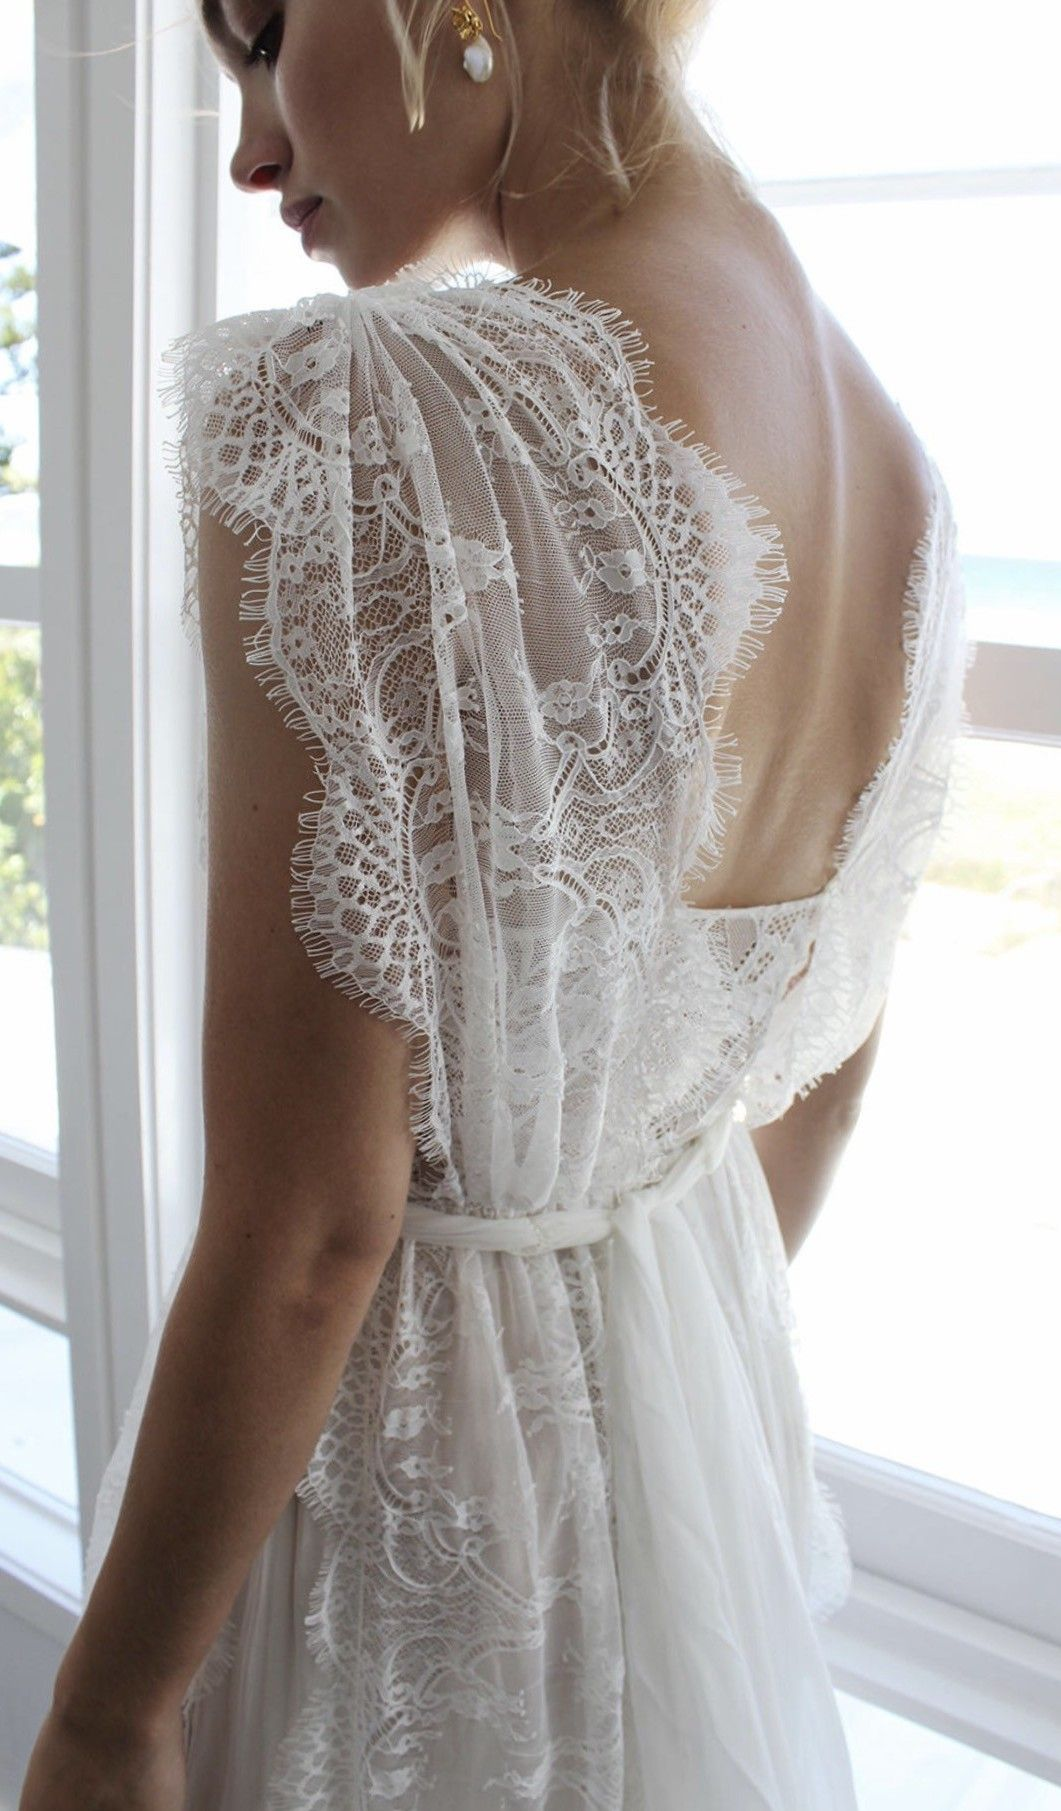 Grecian Wedding Dress | Pinterest | Wedding, Wedding dress and Weddings